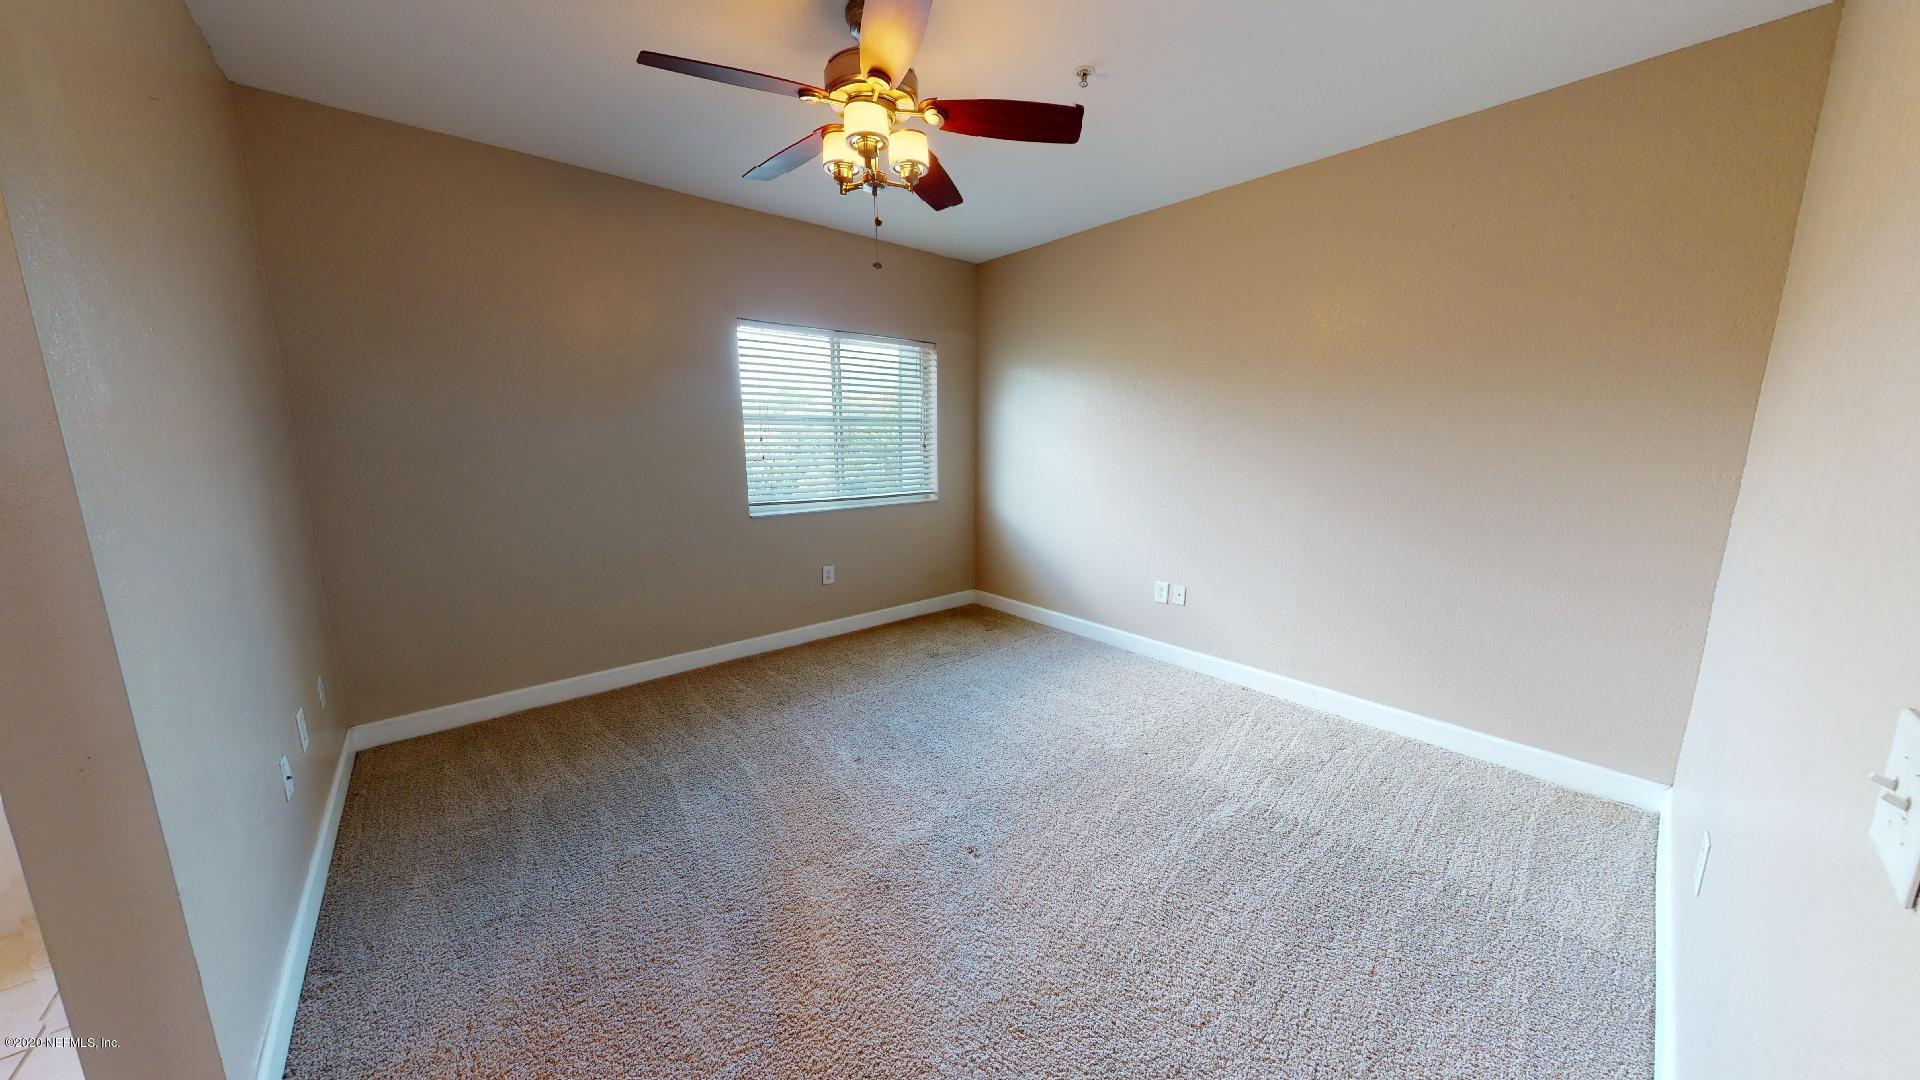 9745 TOUCHTON, JACKSONVILLE, FLORIDA 32246, 2 Bedrooms Bedrooms, ,2 BathroomsBathrooms,Residential,For sale,TOUCHTON,1063189